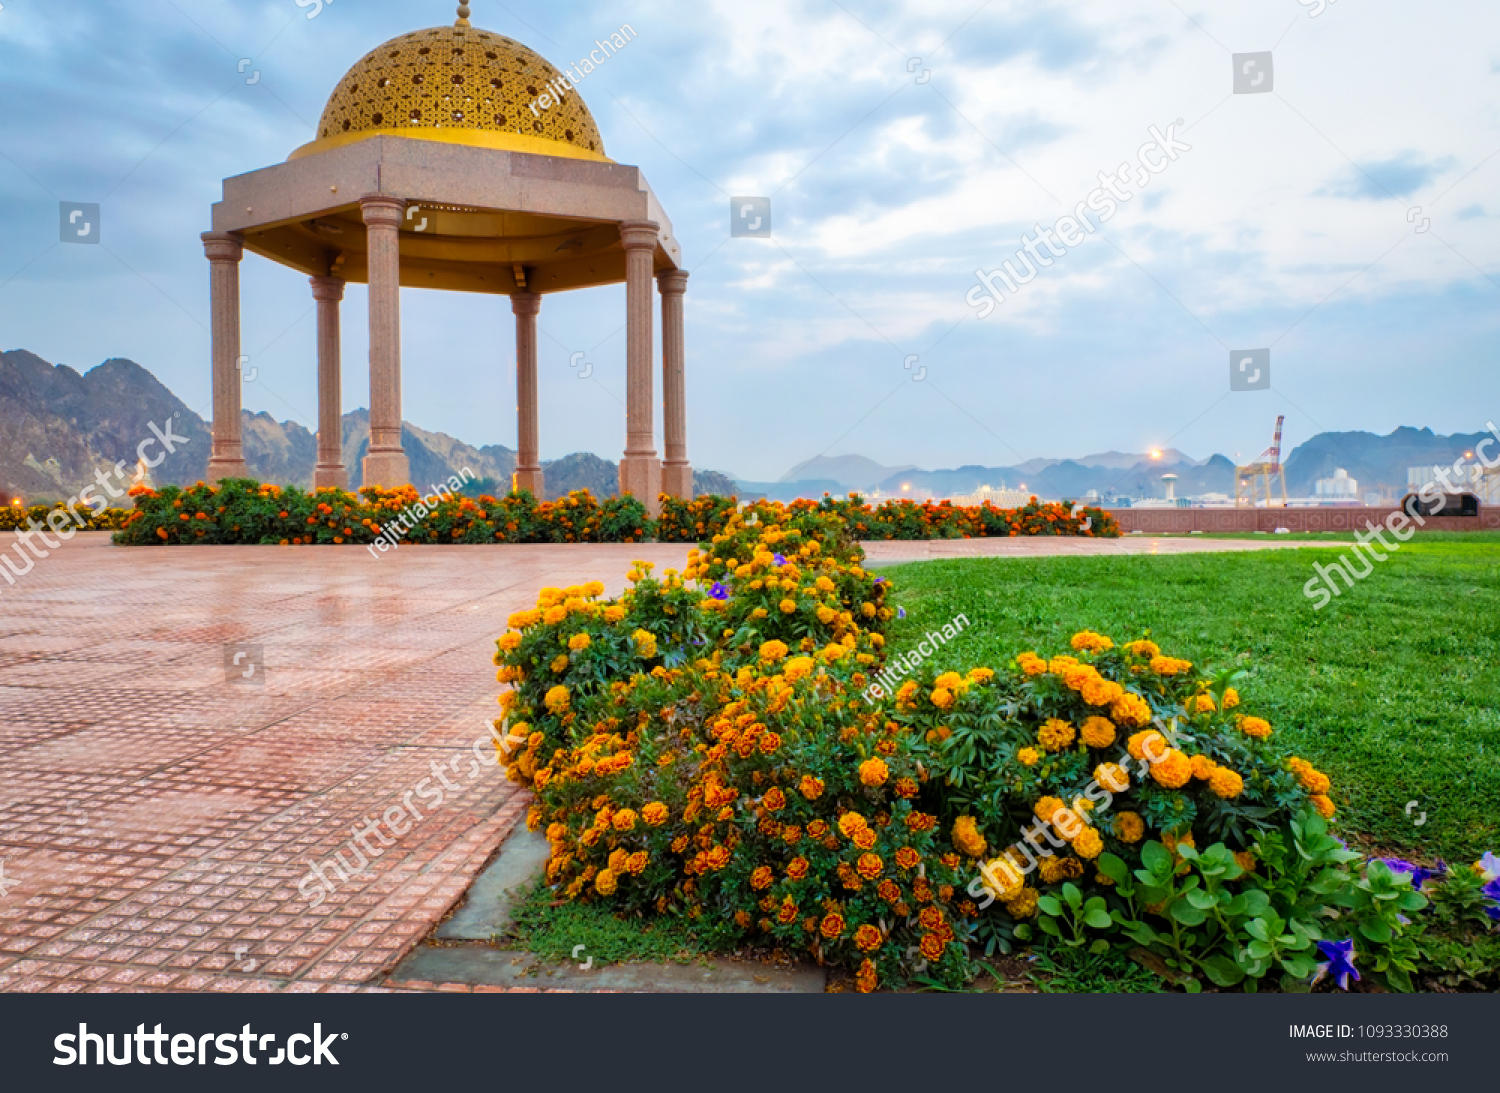 A line of flowers leading to the golden gazebo dome in the park. Shot from Muscat, Oman.